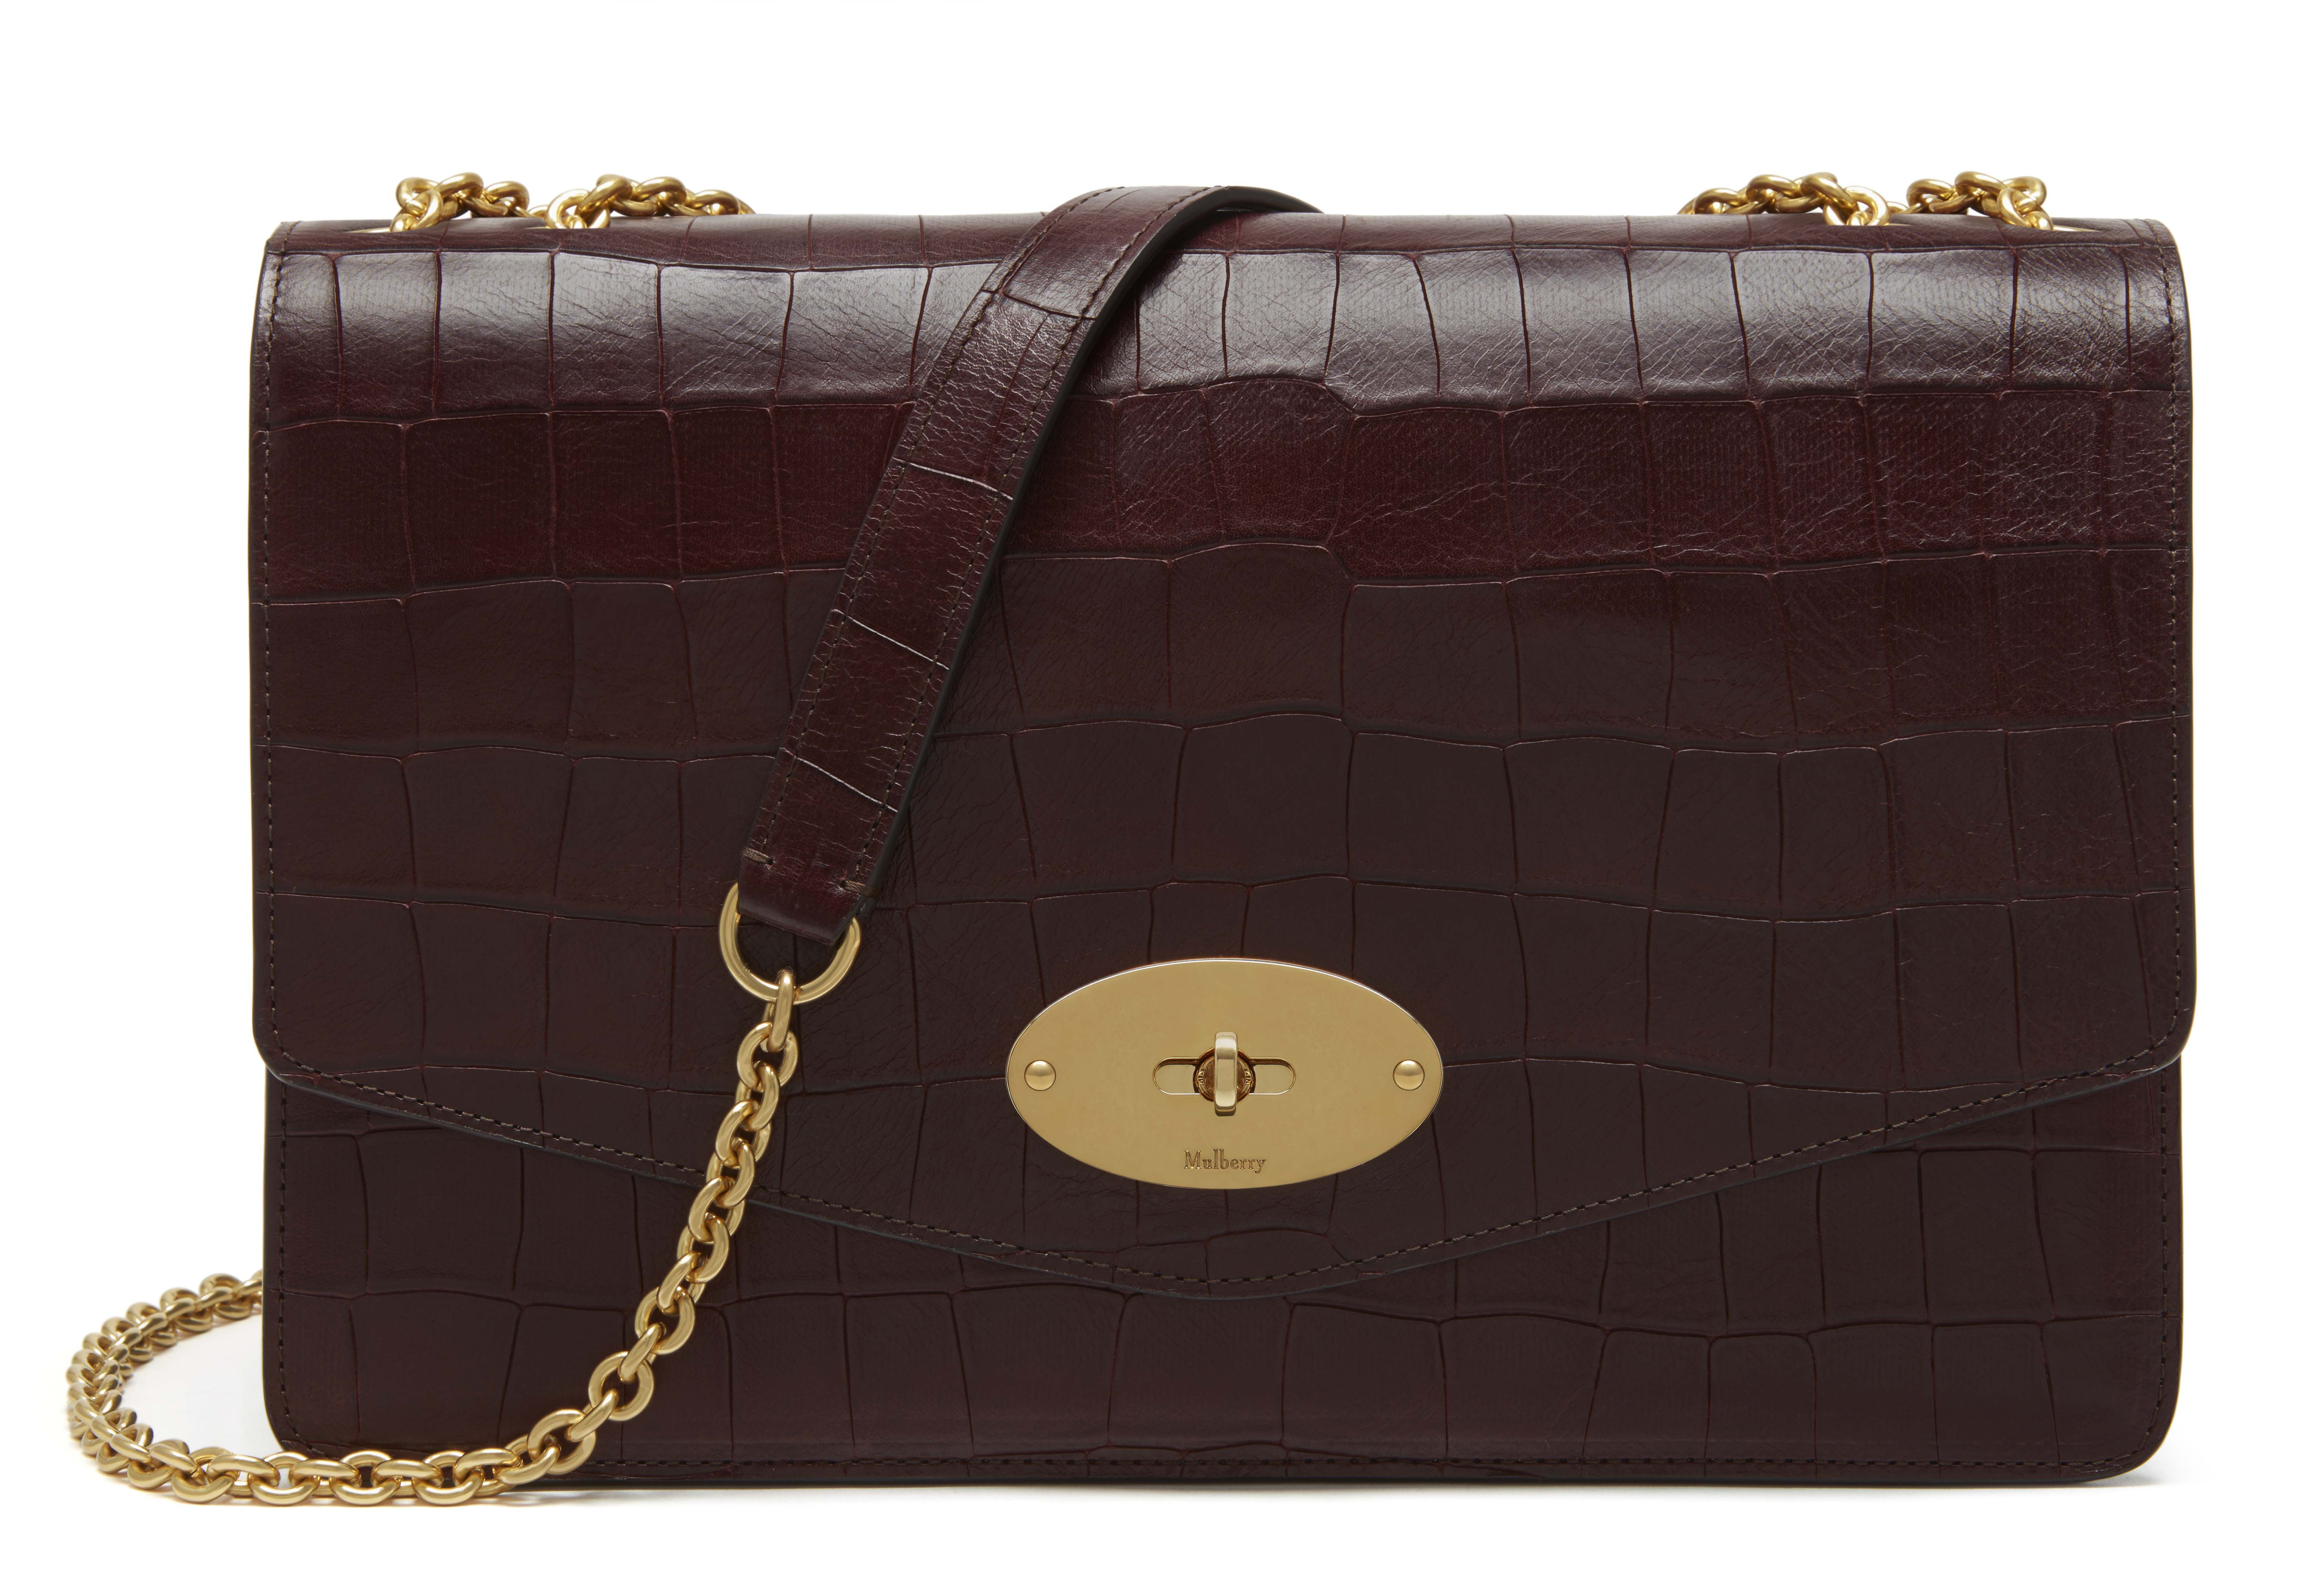 Mulberry sale  the best handbags in the UK sale a864d7ce7fb69